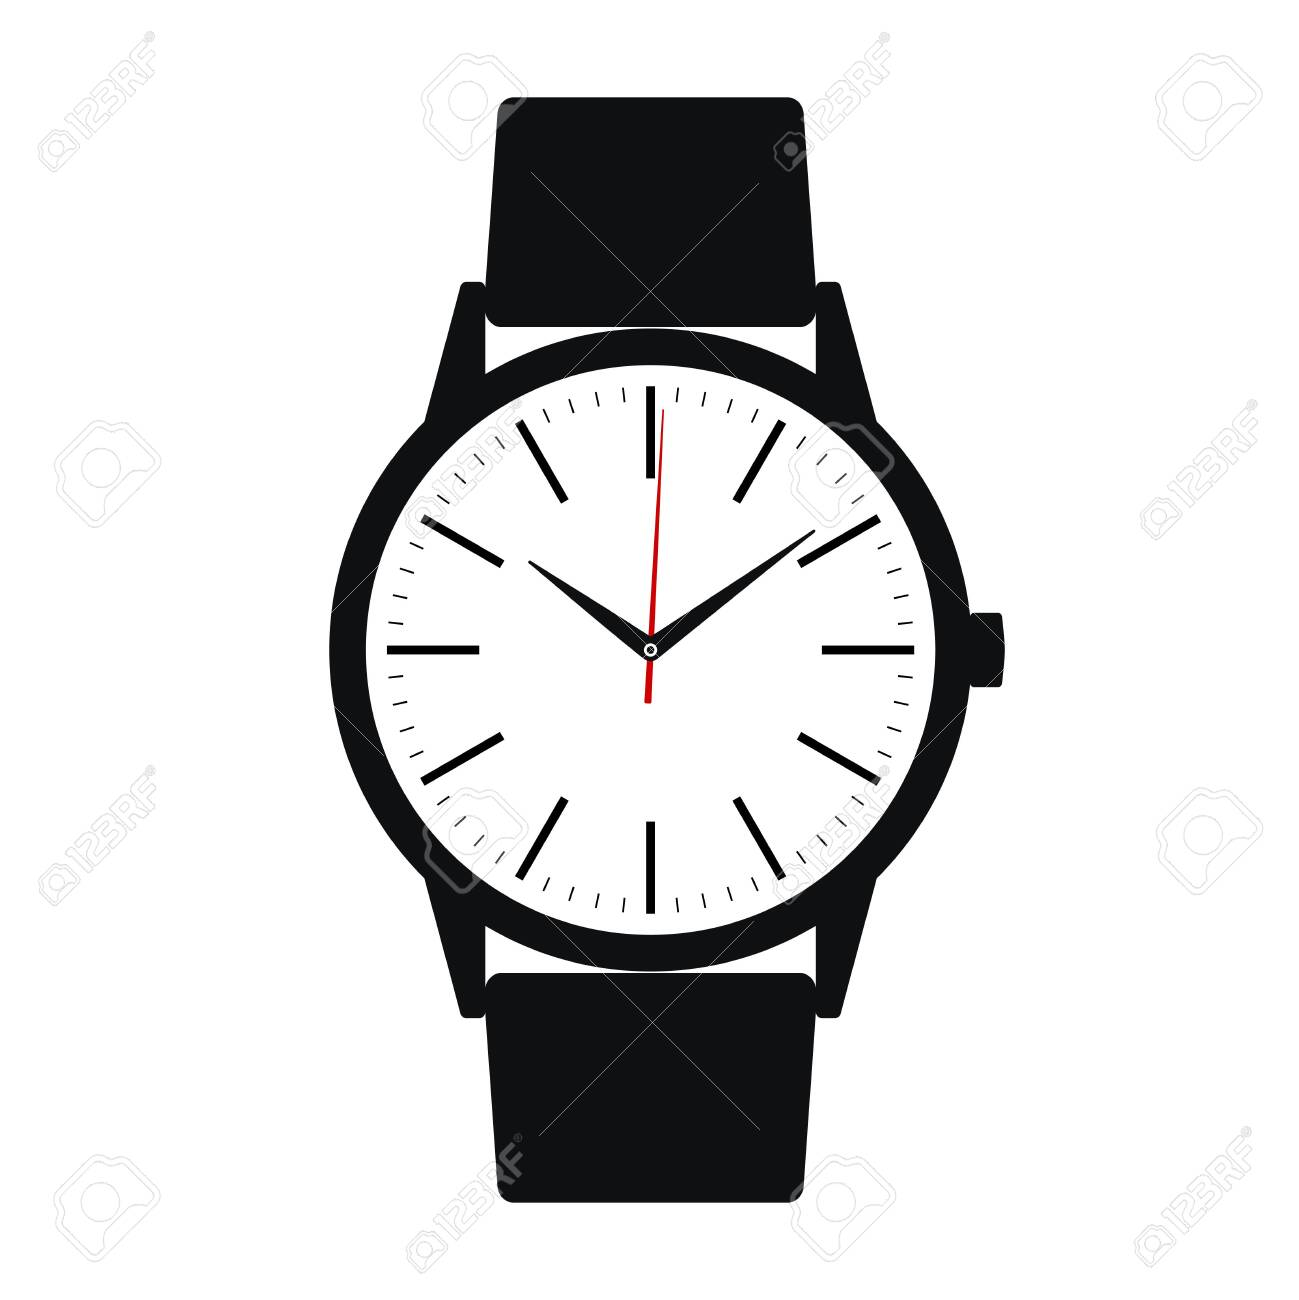 Wrist Watch Icon Symbol Watch With Band Isolated On White Background Royalty Free Cliparts Vectors And Stock Illustration Image 129793605